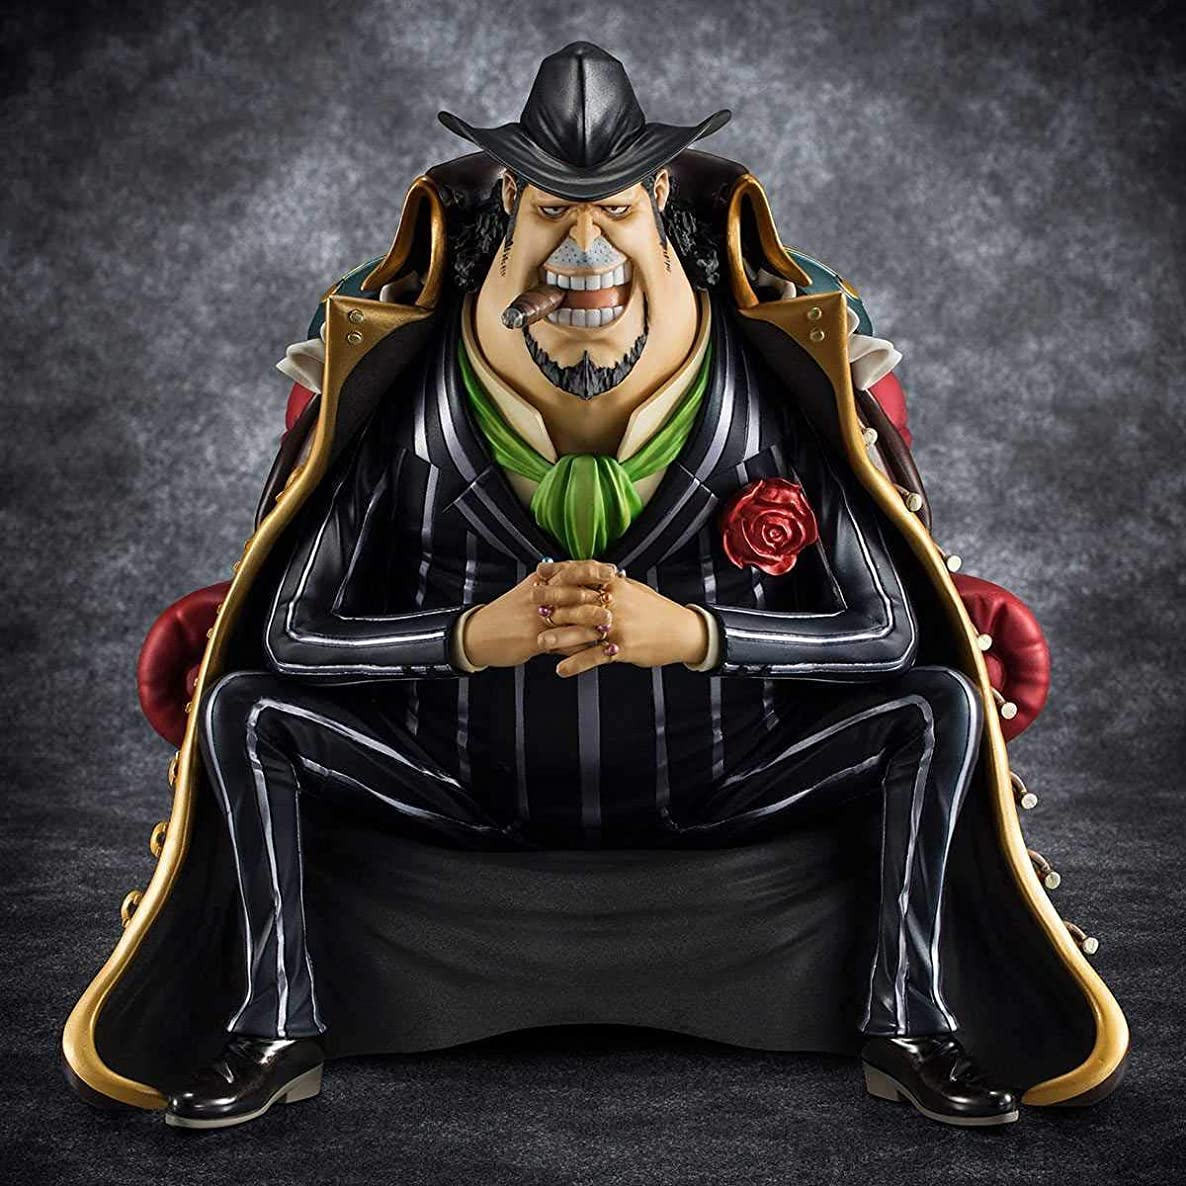 Megahouse One Piece Portrait of Pirates: Sitting on Chairs Capone Gang Bege PVC Figure